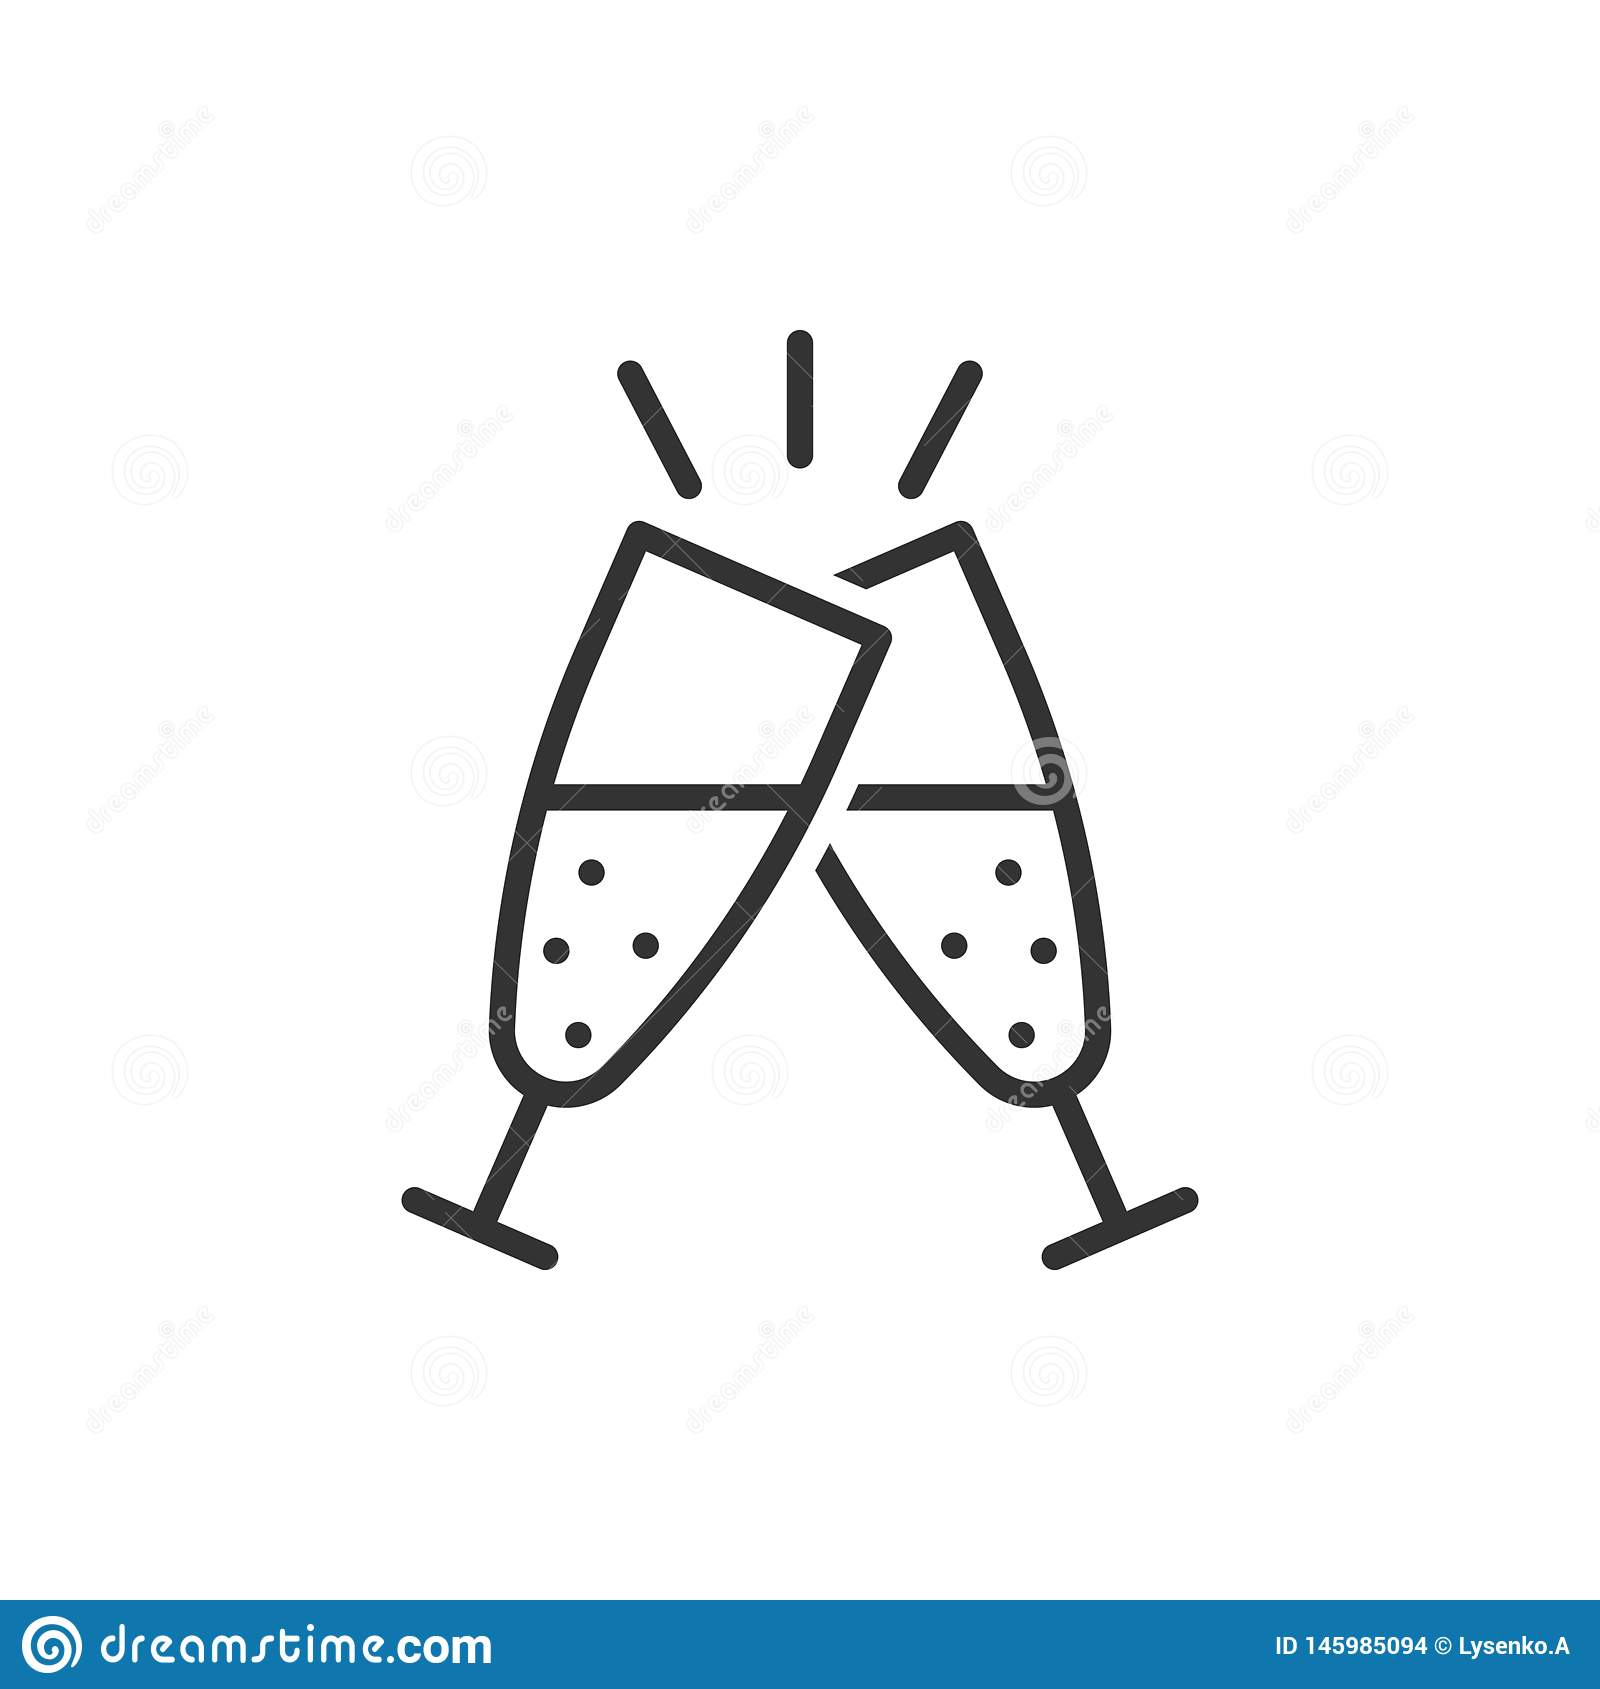 Сhampagne glass icon in flat style. Alcohol drink vector illustration on white isolated background. Cocktail business concept